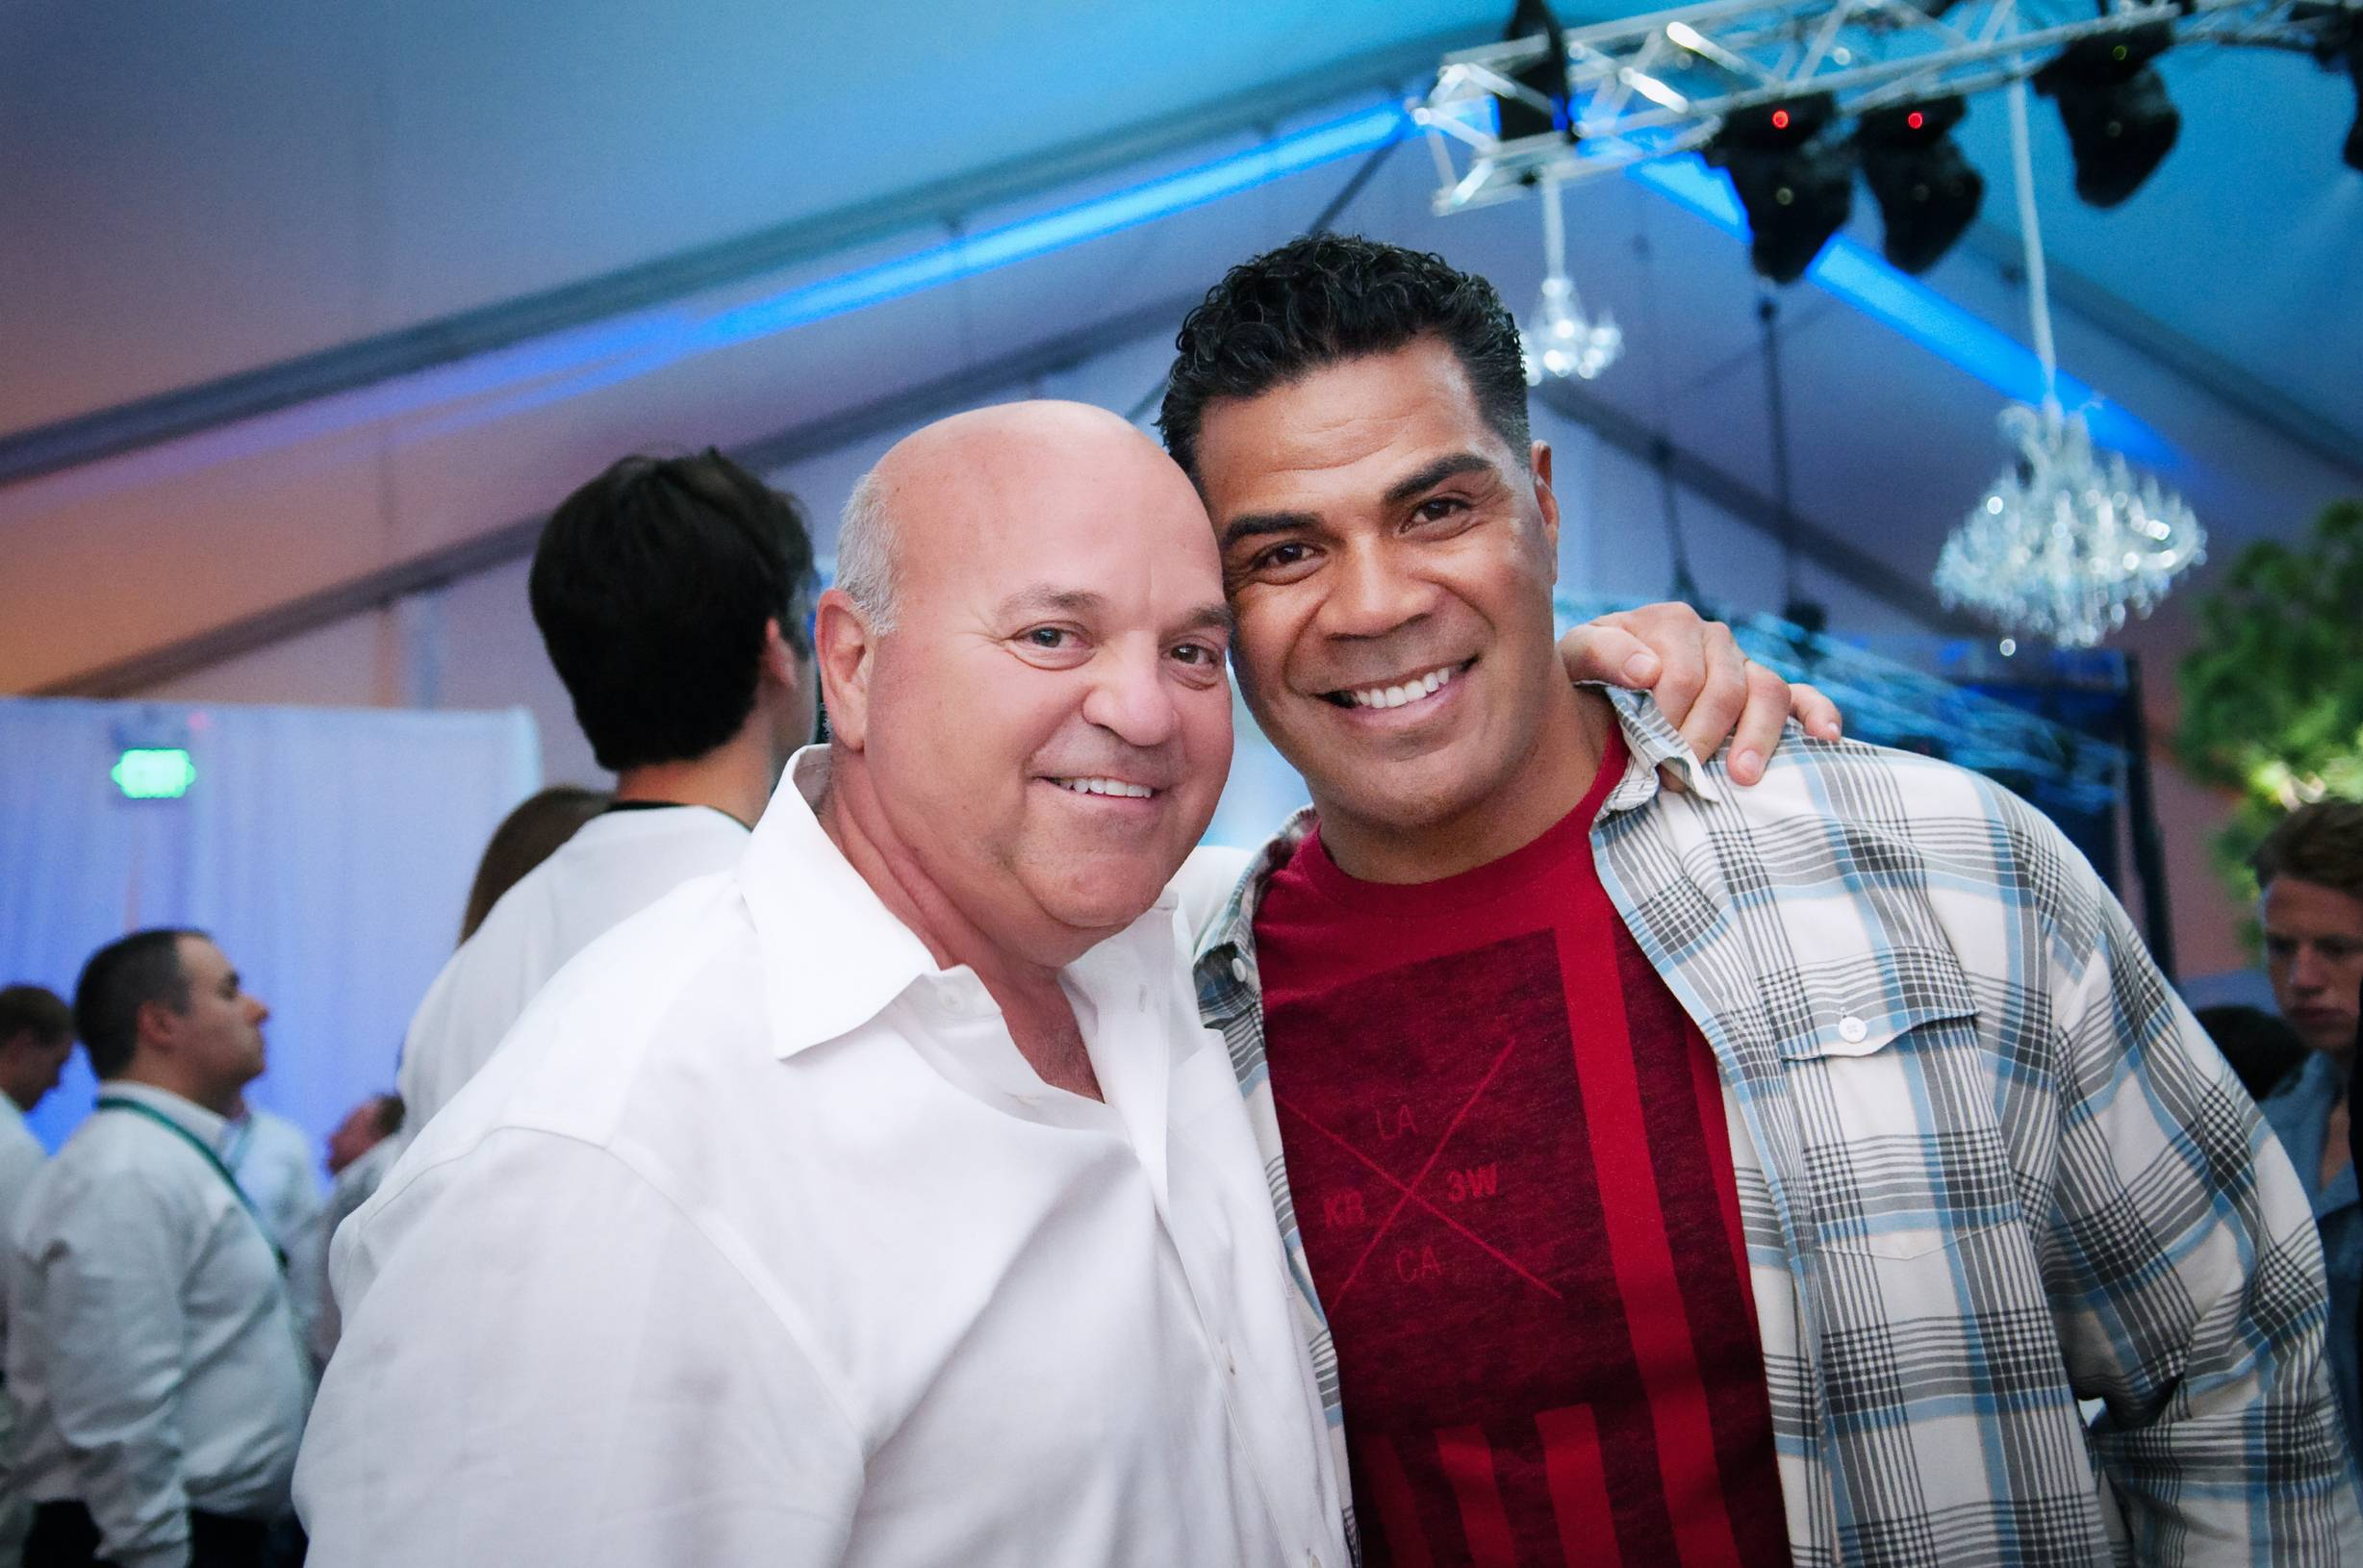 Ted Roth with Junior Seau